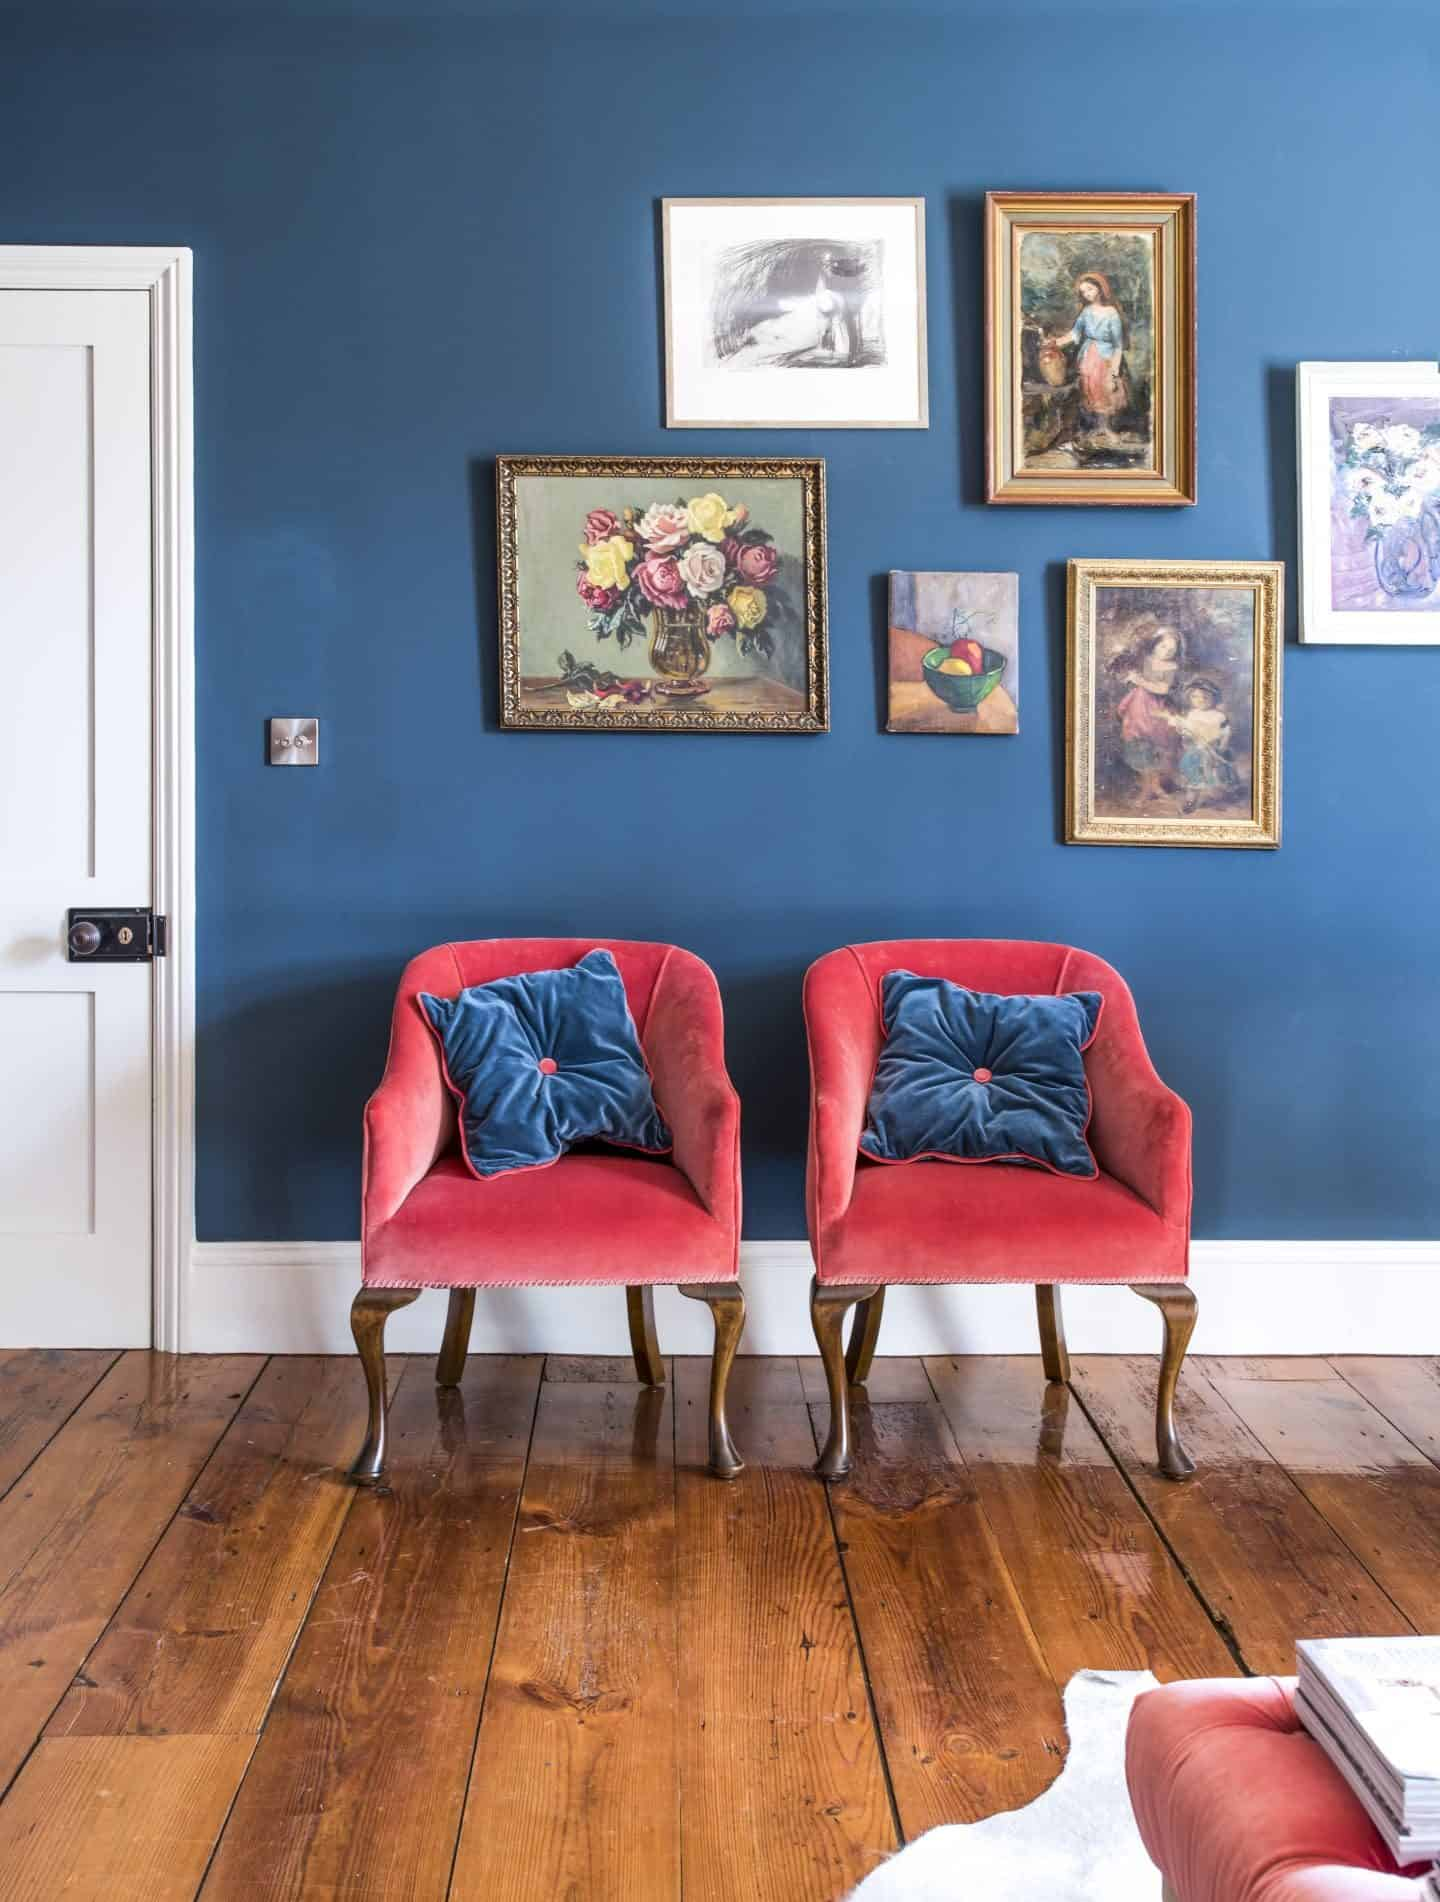 Image from the book Love Colour ©annastarmer - A blue wall with red chairs in front